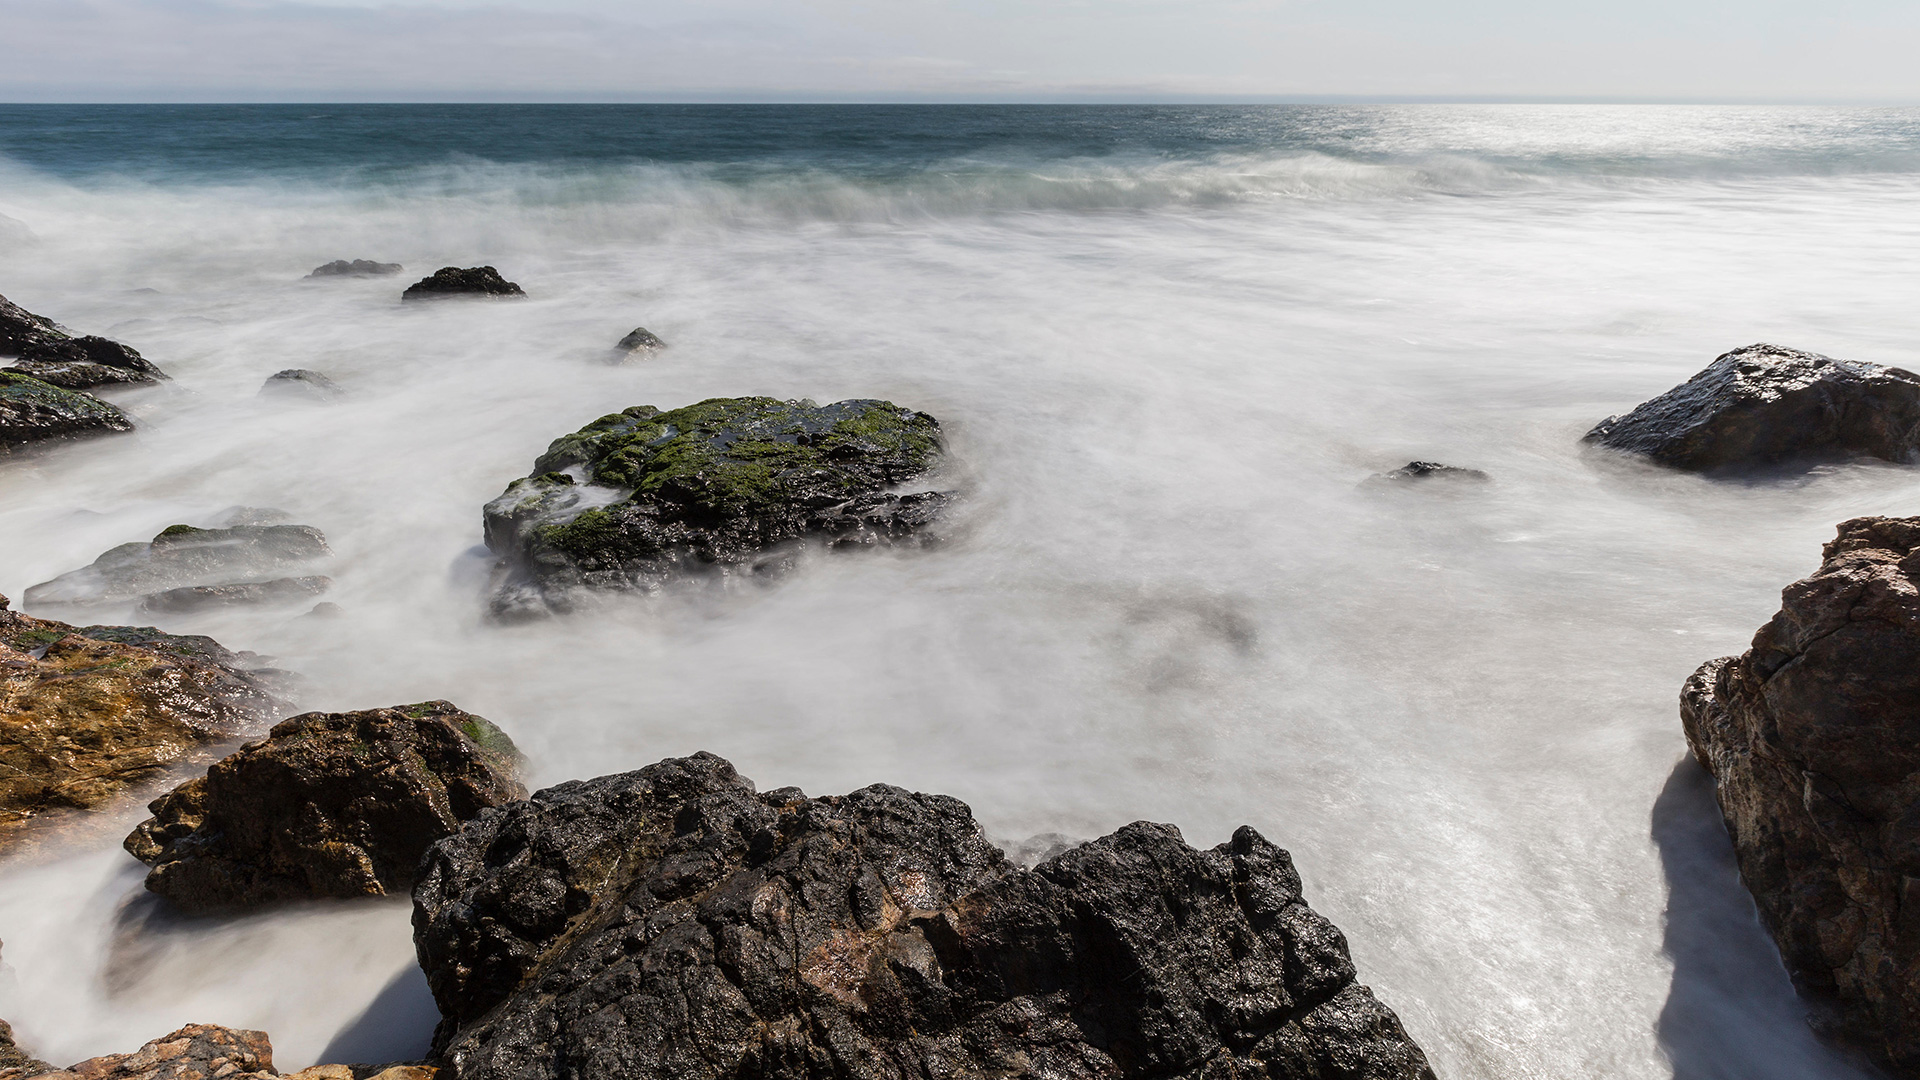 The rocky surf of Point Dume.